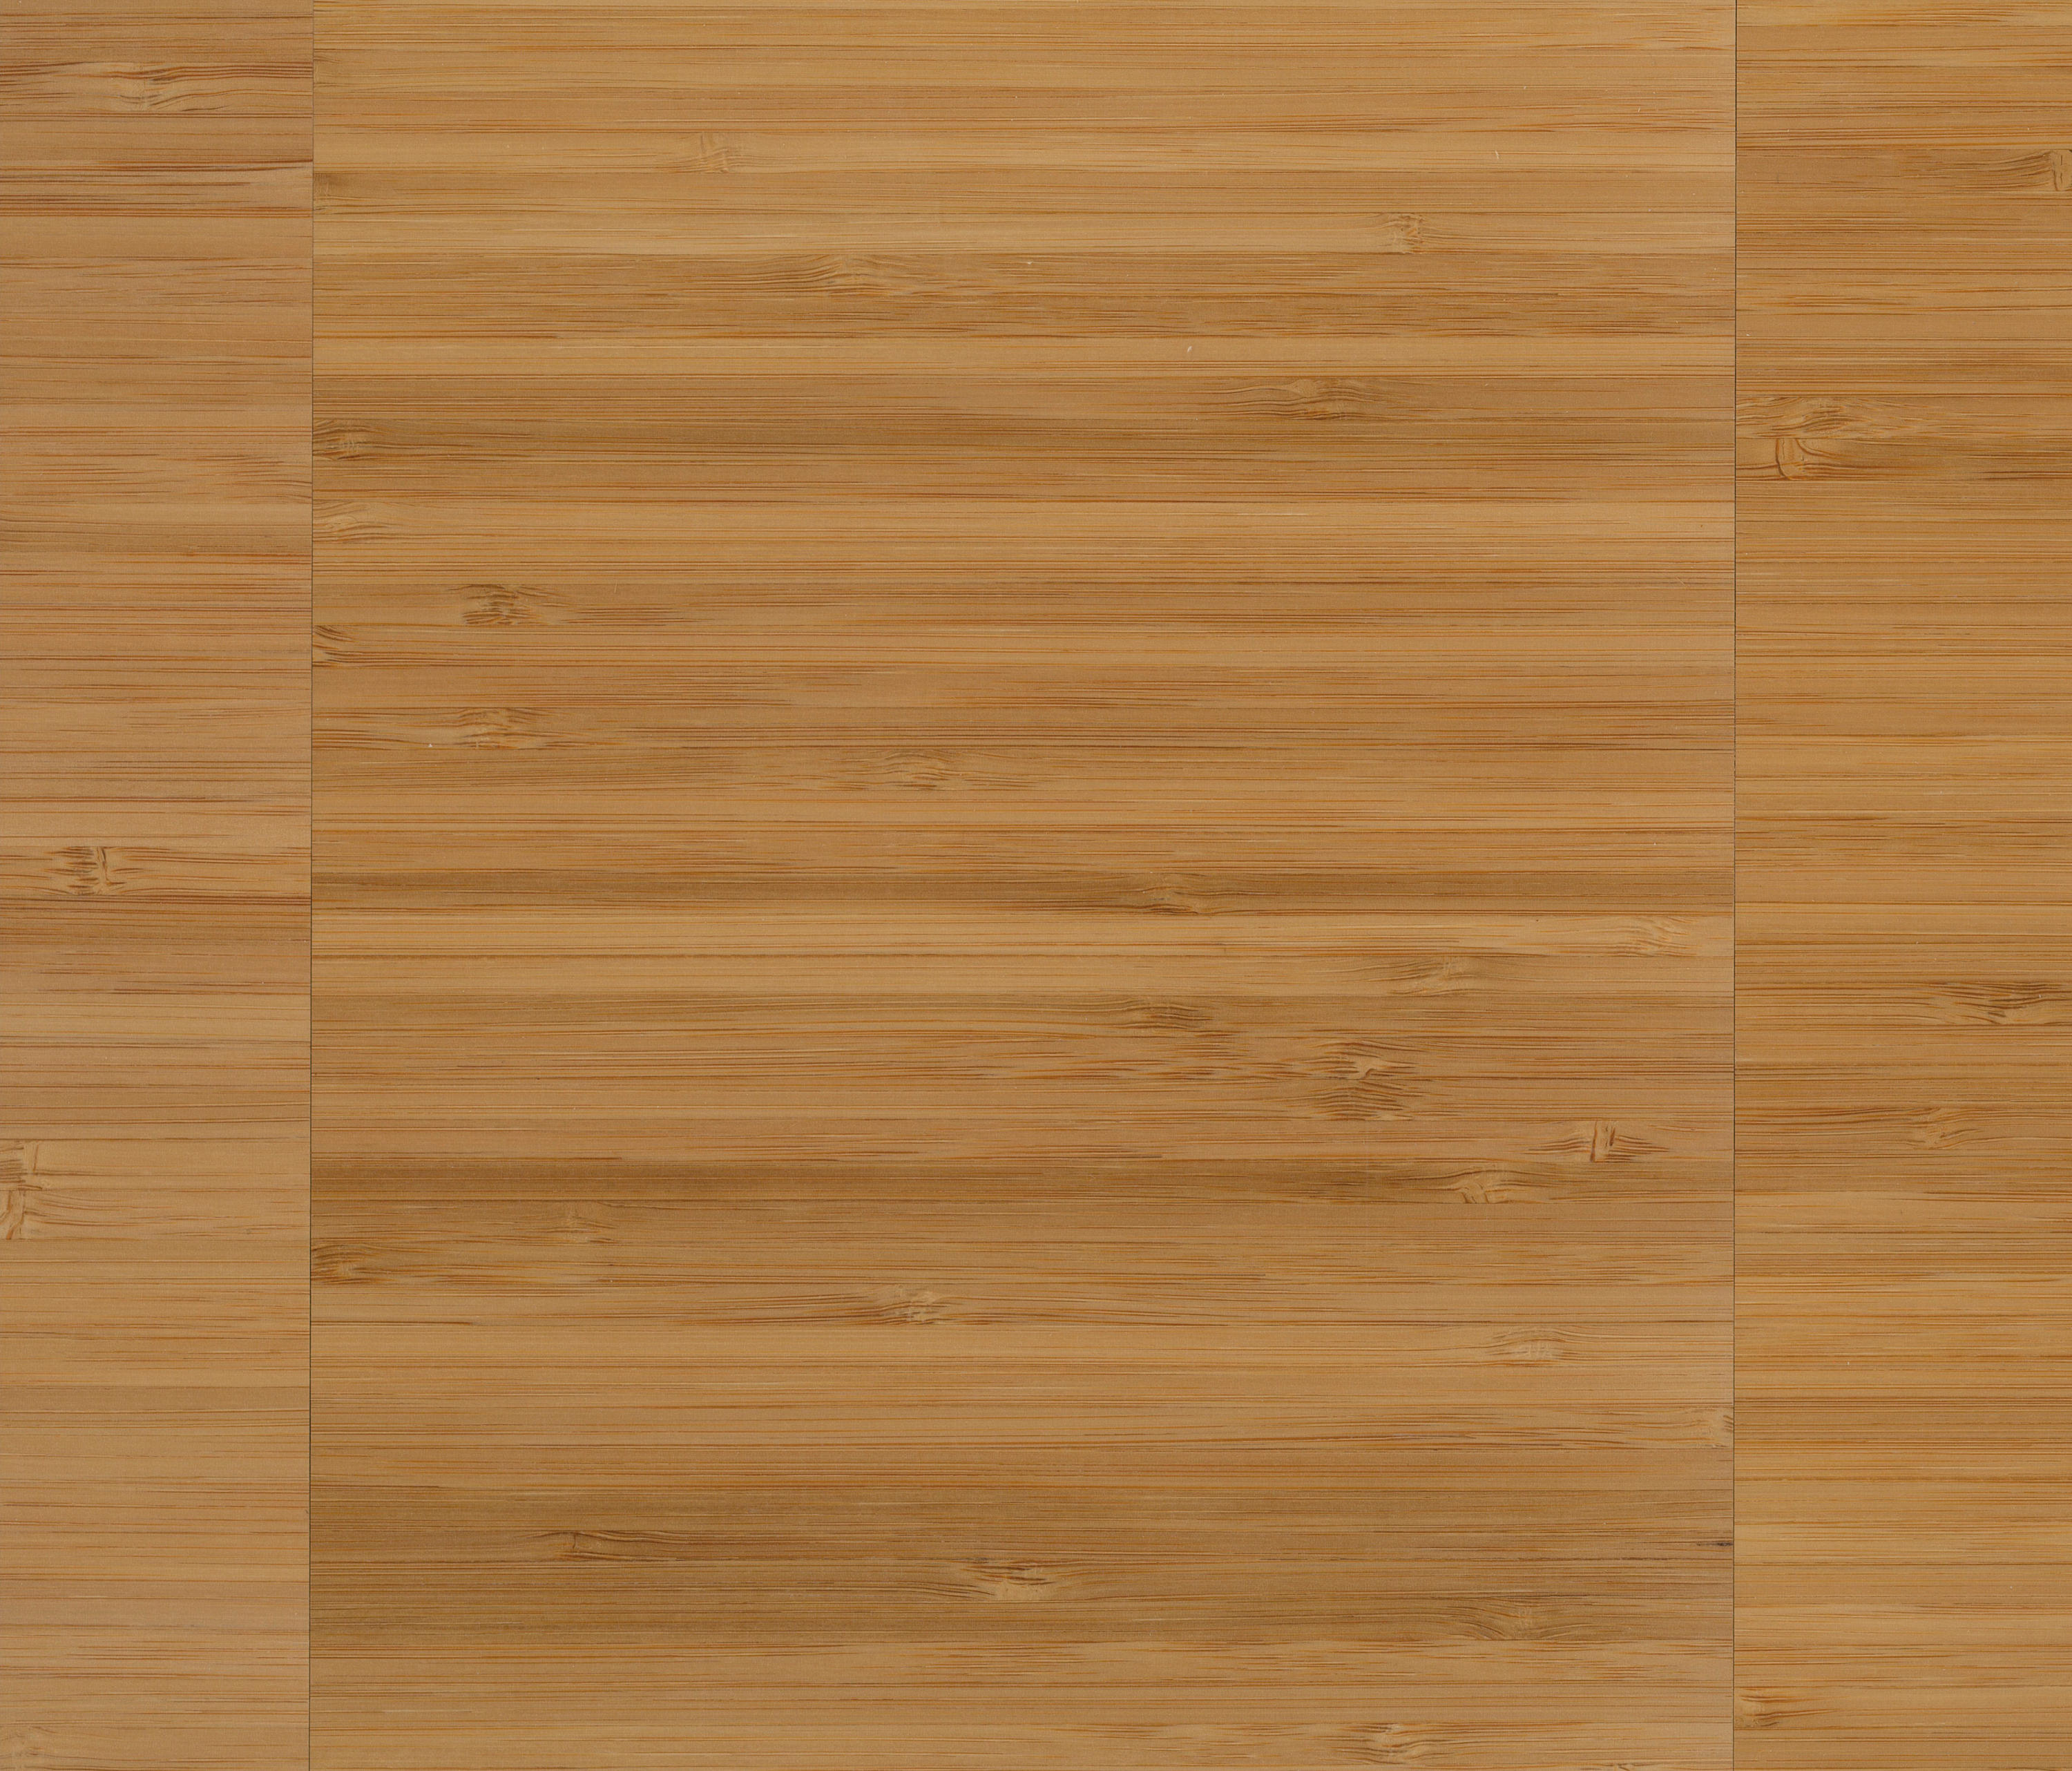 FINEBAMBOO CARAMEL Bamboo flooring from MOSO bamboo products